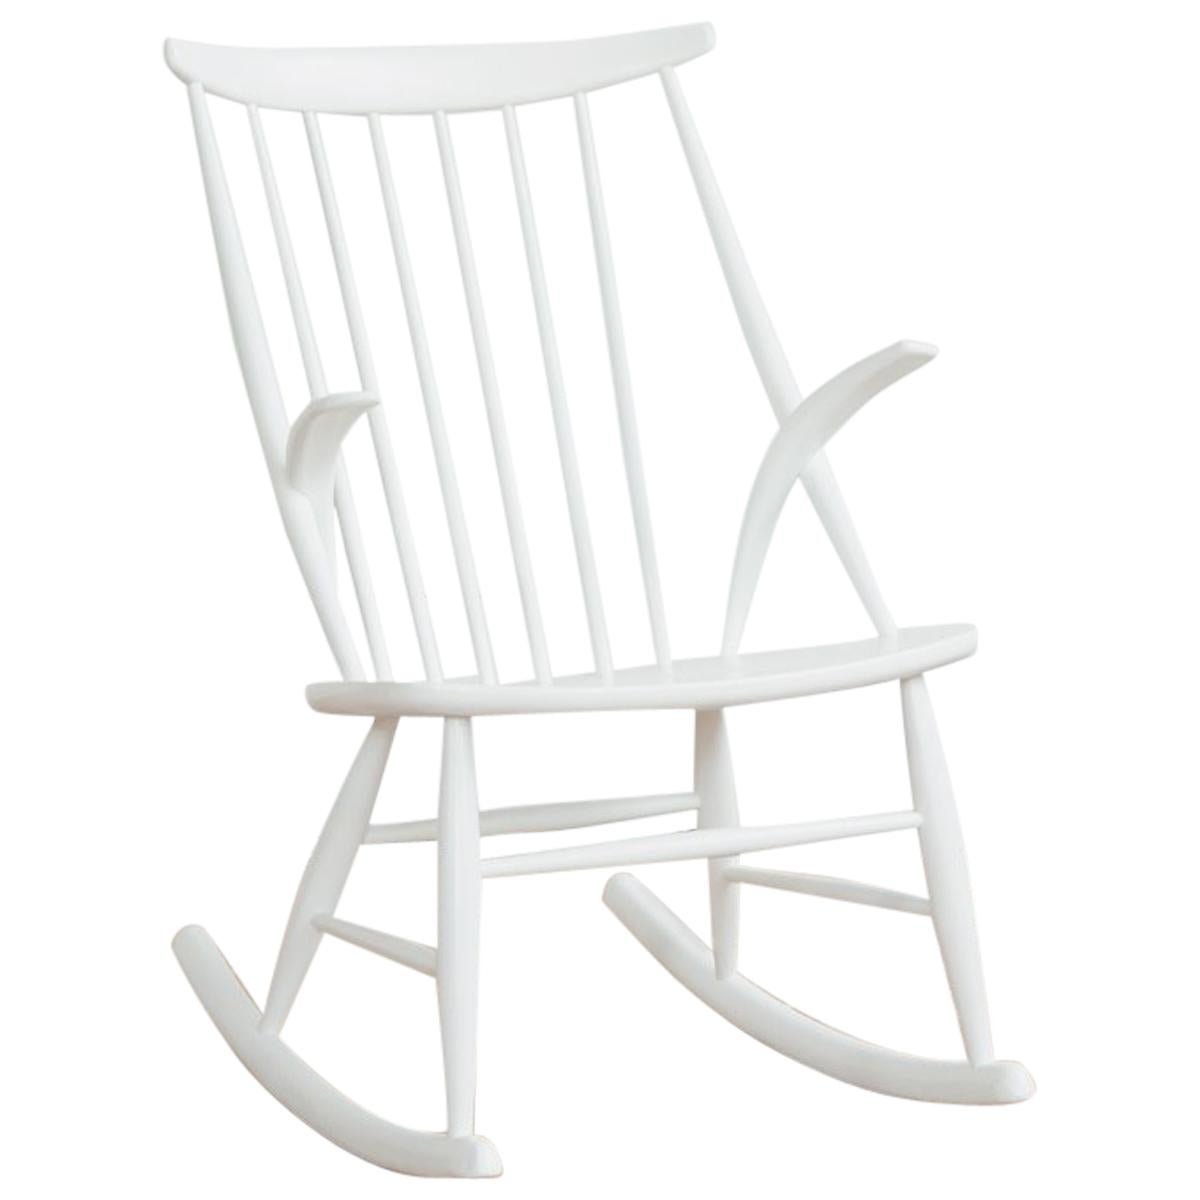 white rocking chairs for sale folding chair umbrella midcentury by illum wikkelso niels eilersen